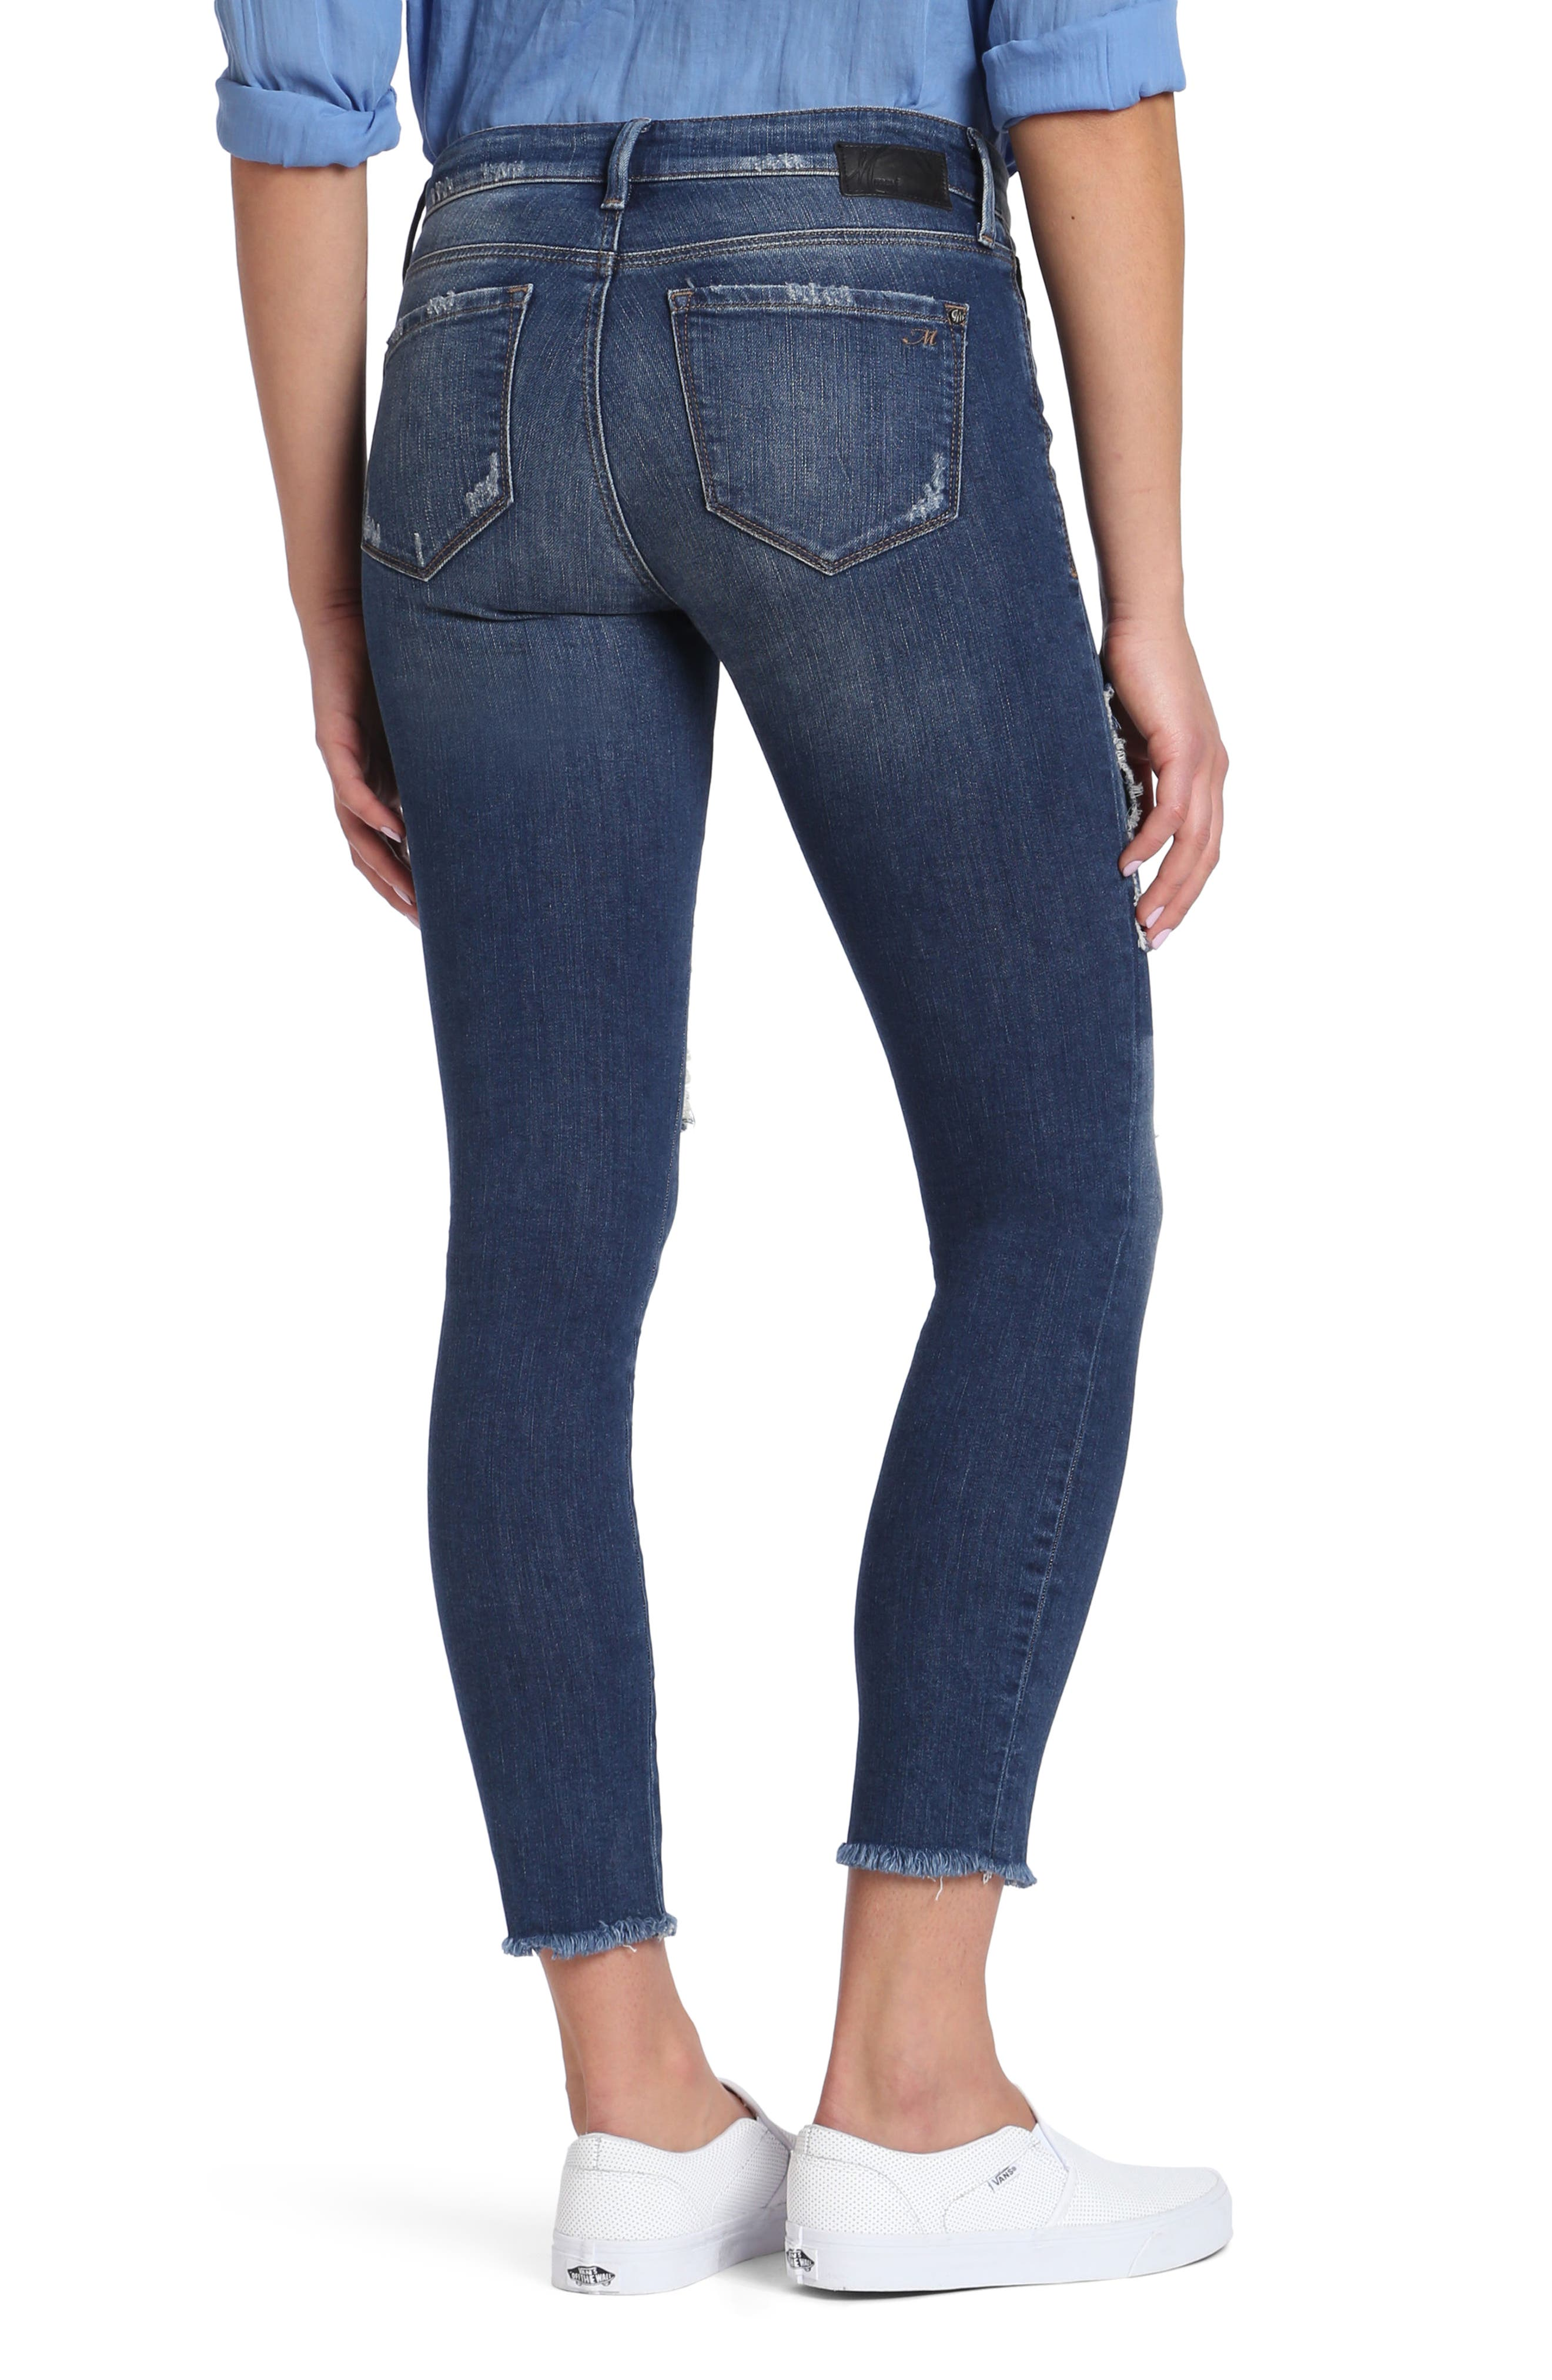 Adriana Patched Stretch Skinny Jeans,                             Alternate thumbnail 2, color,                             401